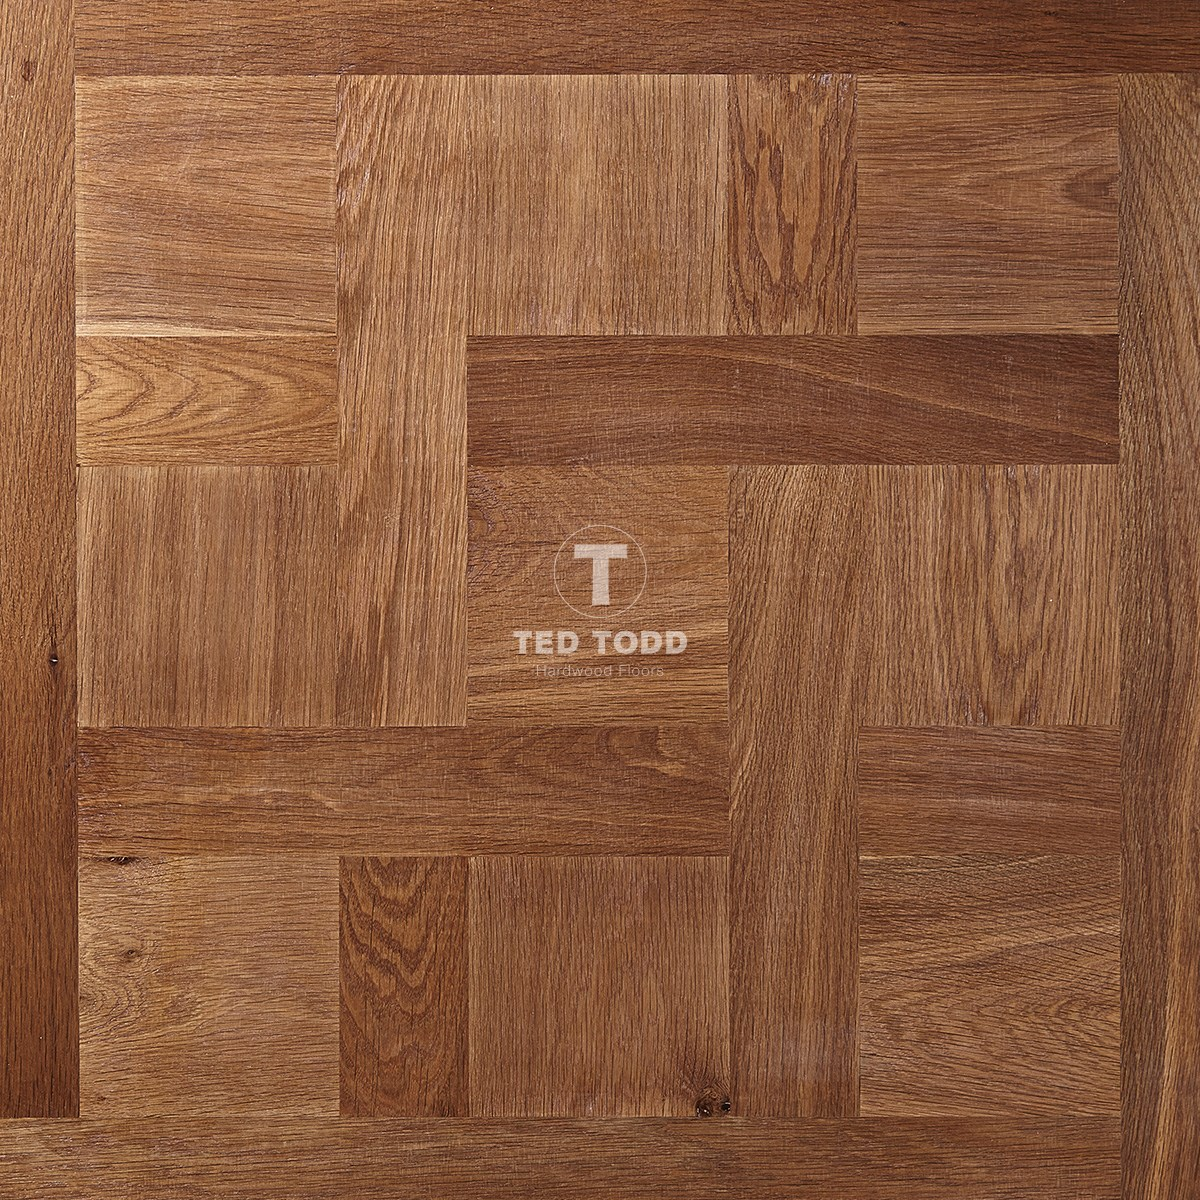 Very Impressive portraiture of BestatFlooring Products Engineered Wood Flooring Ted Todd Engineered  with #4D291B color and 1200x1200 pixels